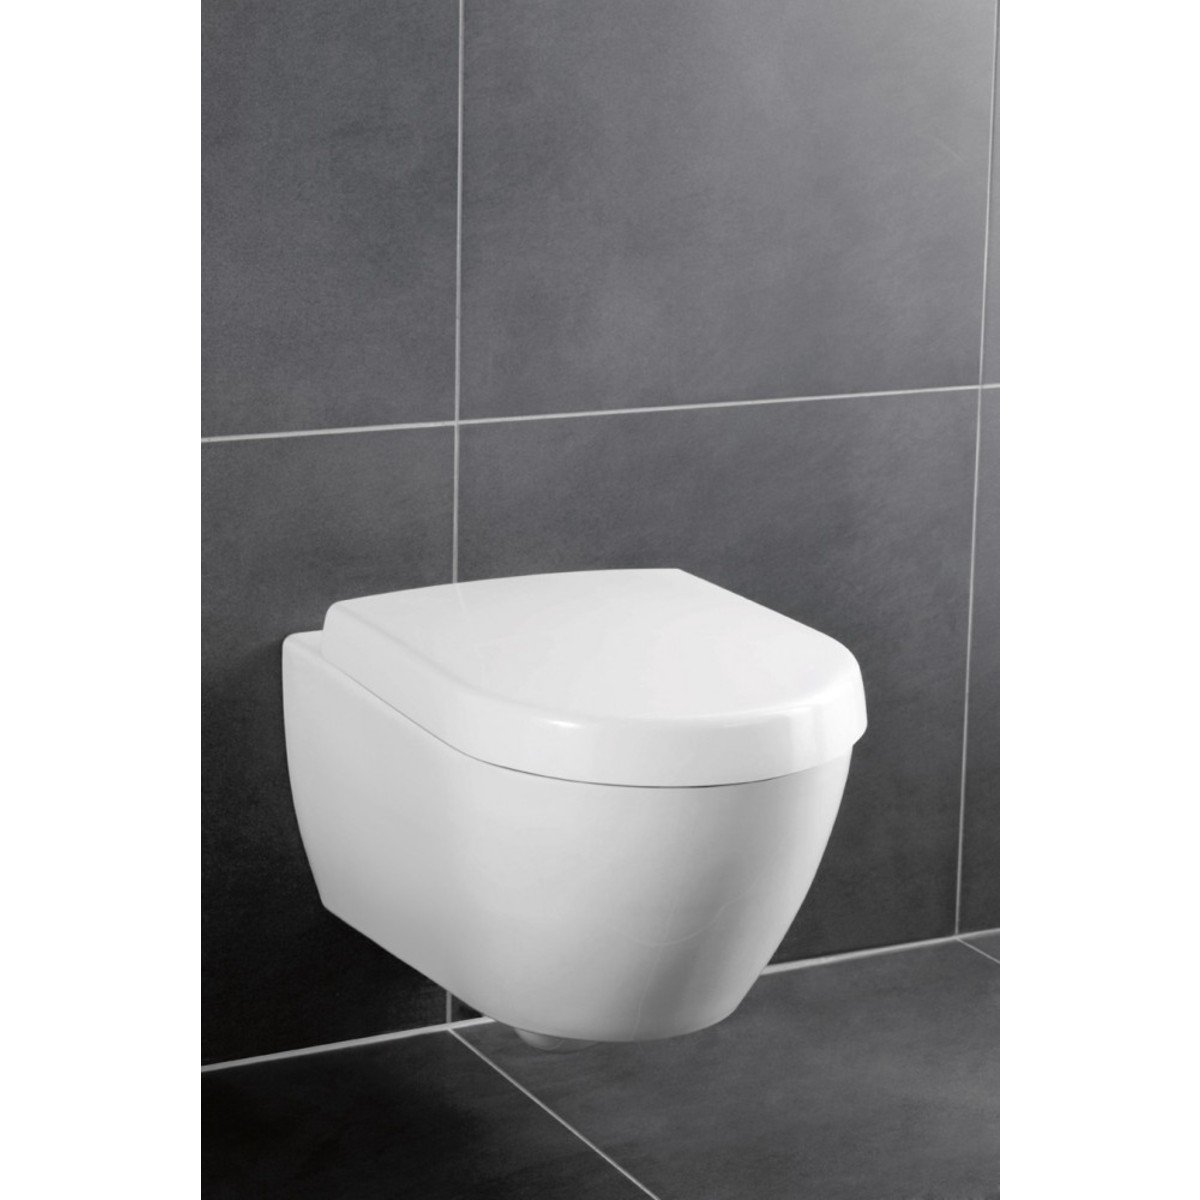 villeroy en boch subway 2 0 directflush toiletset met geberit reservoir en bedieningsplaat. Black Bedroom Furniture Sets. Home Design Ideas